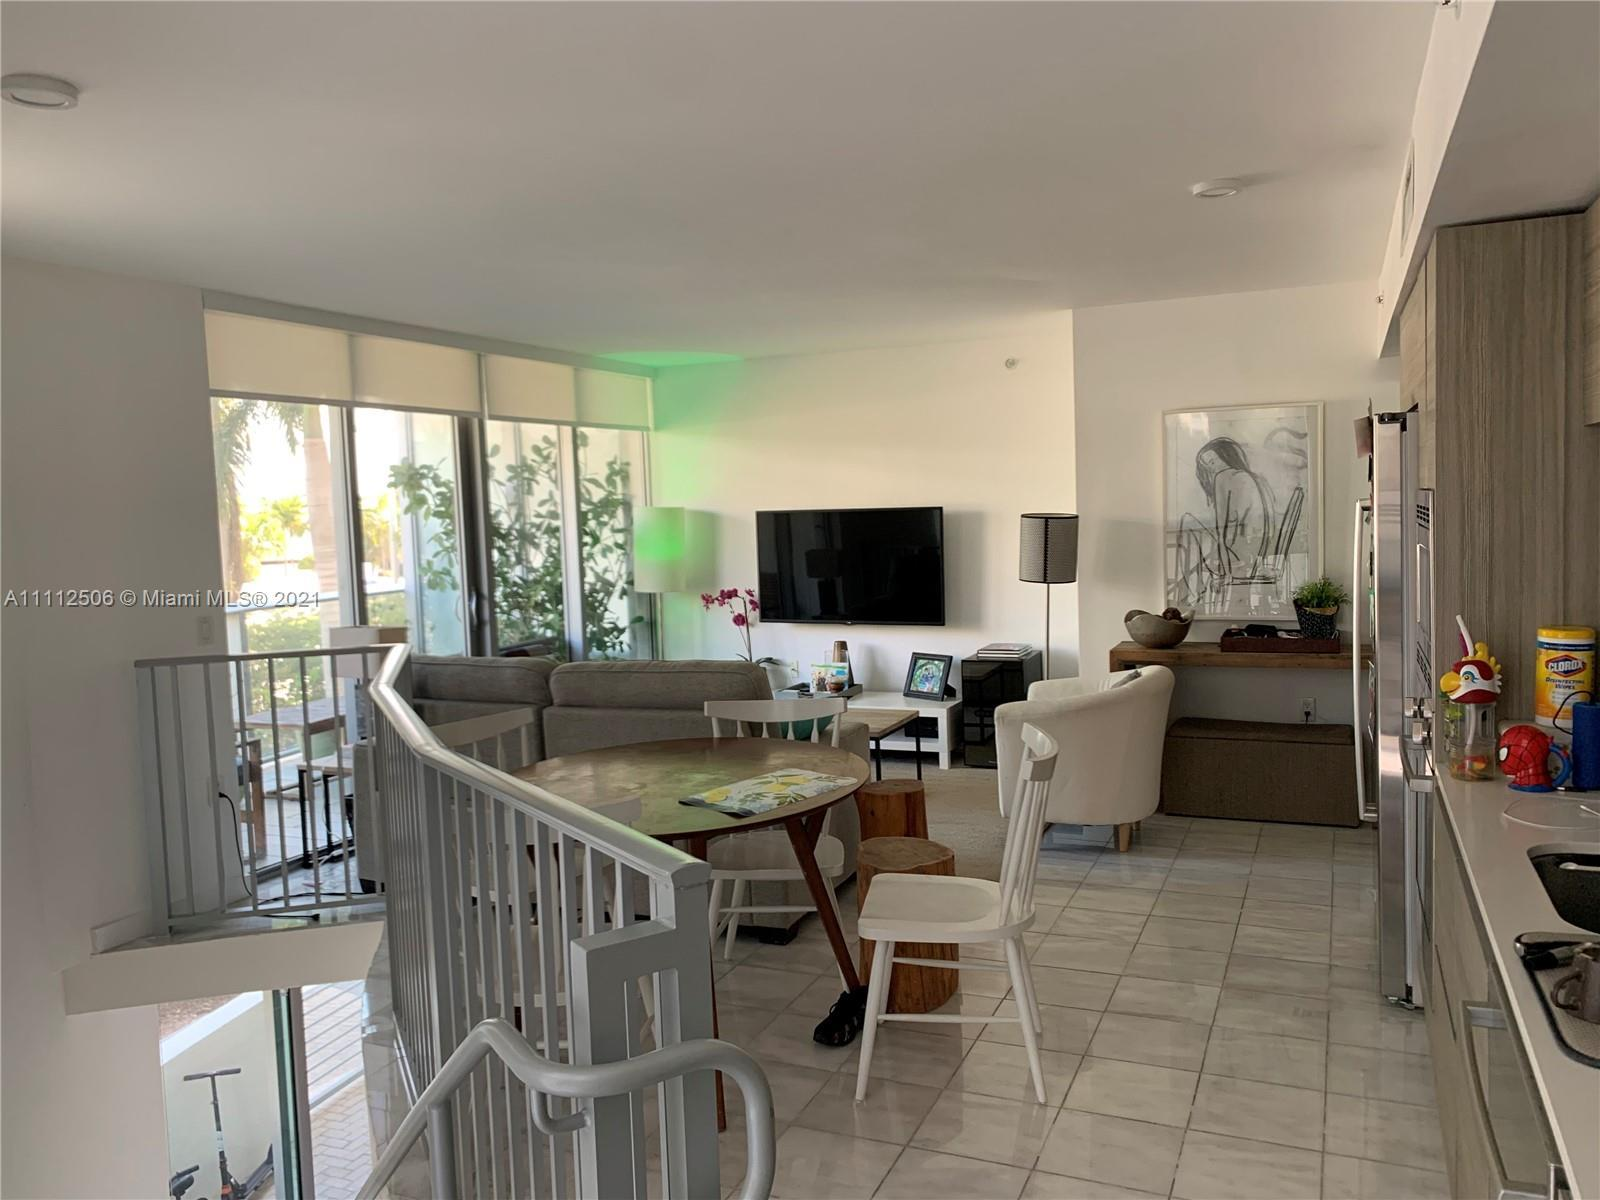 Brand new 2 BED 2 BATH + DEN, walk distance to the beach. Duplex at the first floor, direct access t